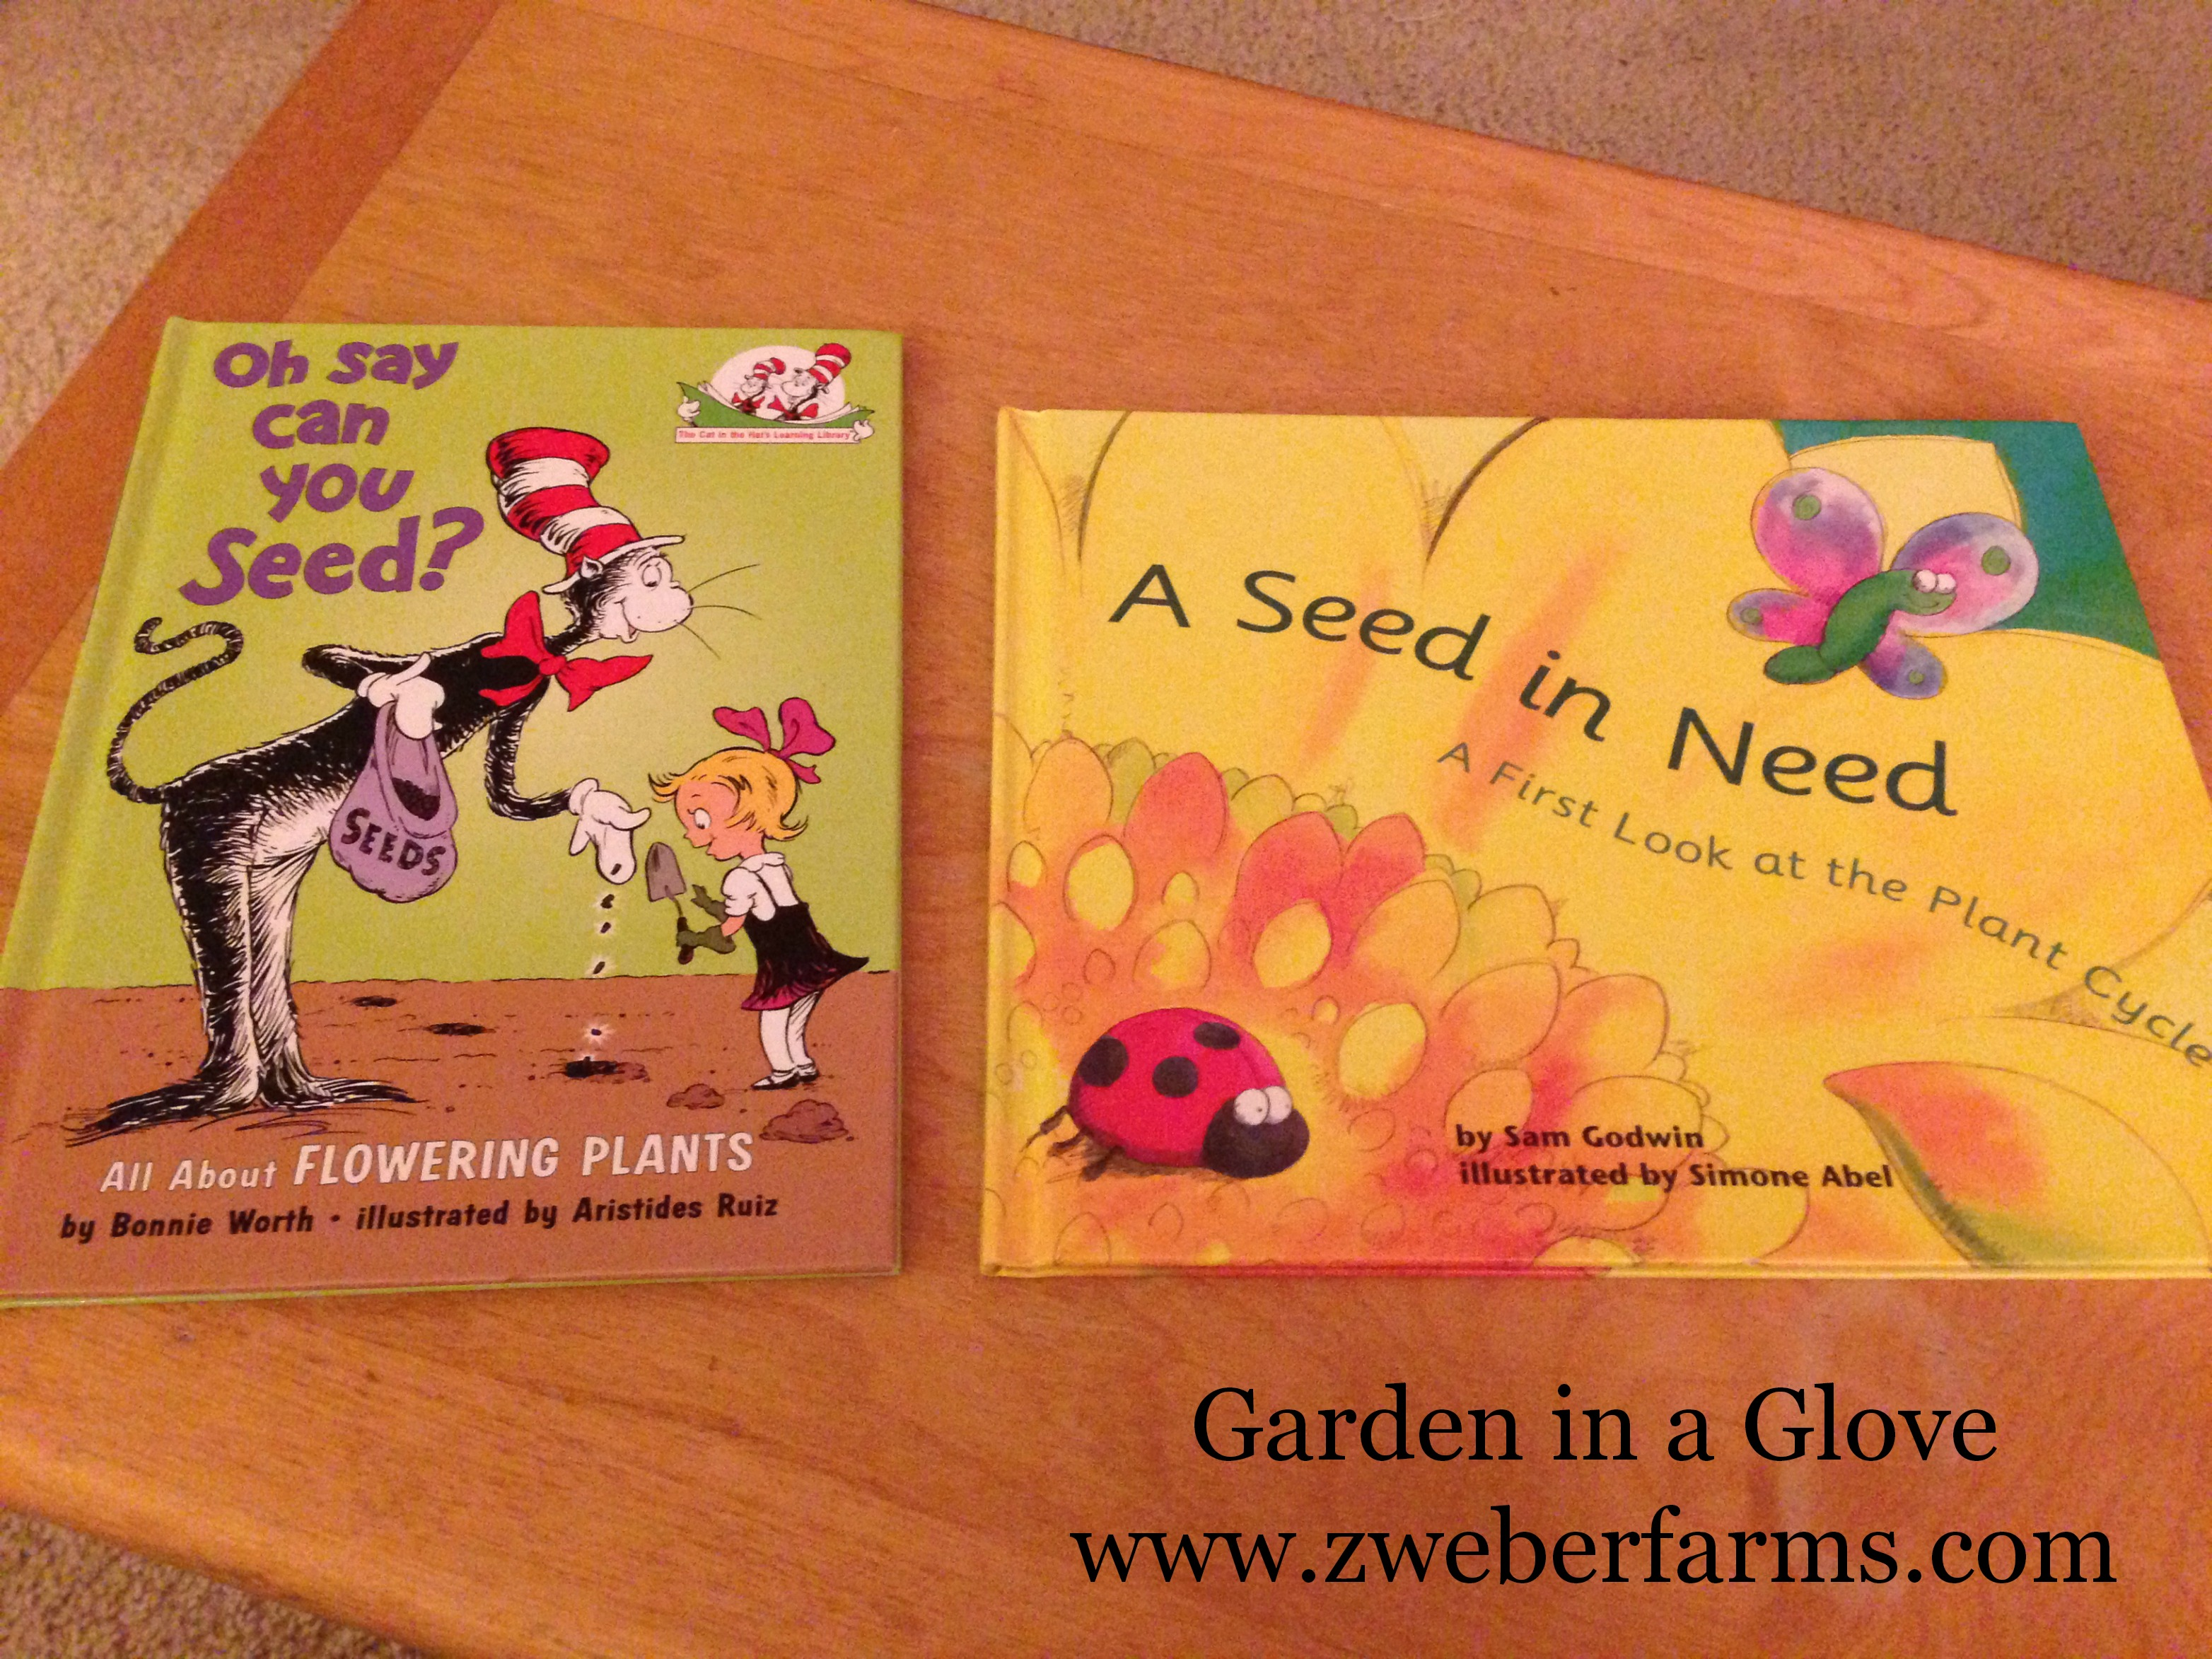 Free Farm Lesson Plans Garden in a Glove Zweber Family Farms – Gardening Lesson Plans